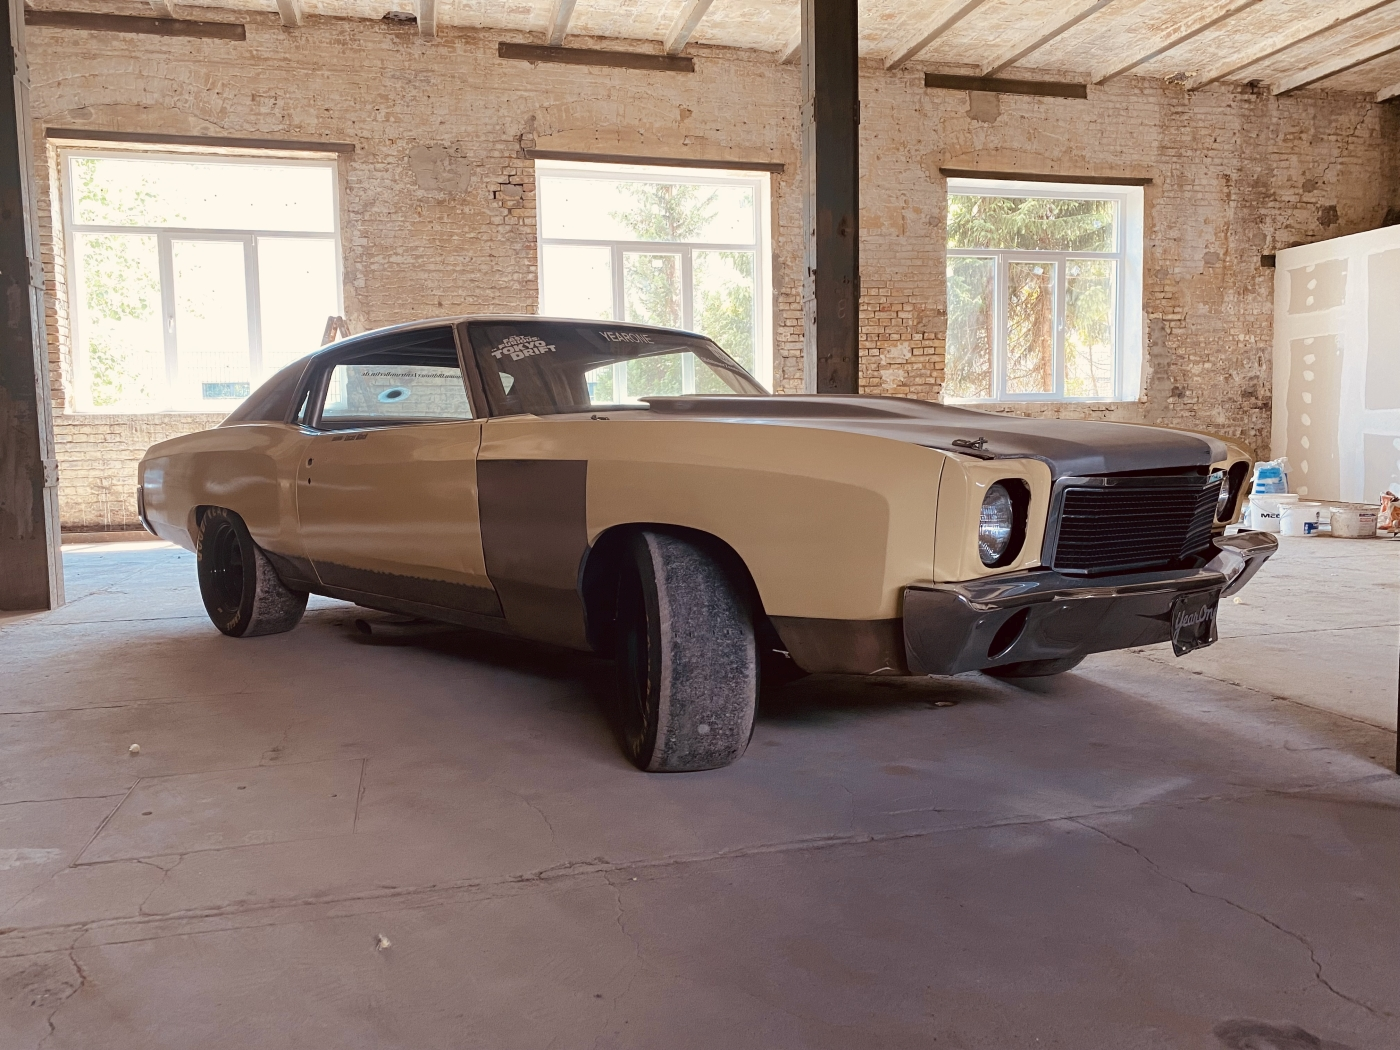 1971 Chevrolet Monte Carlo Fast and Furious Tokyo Drift (9)